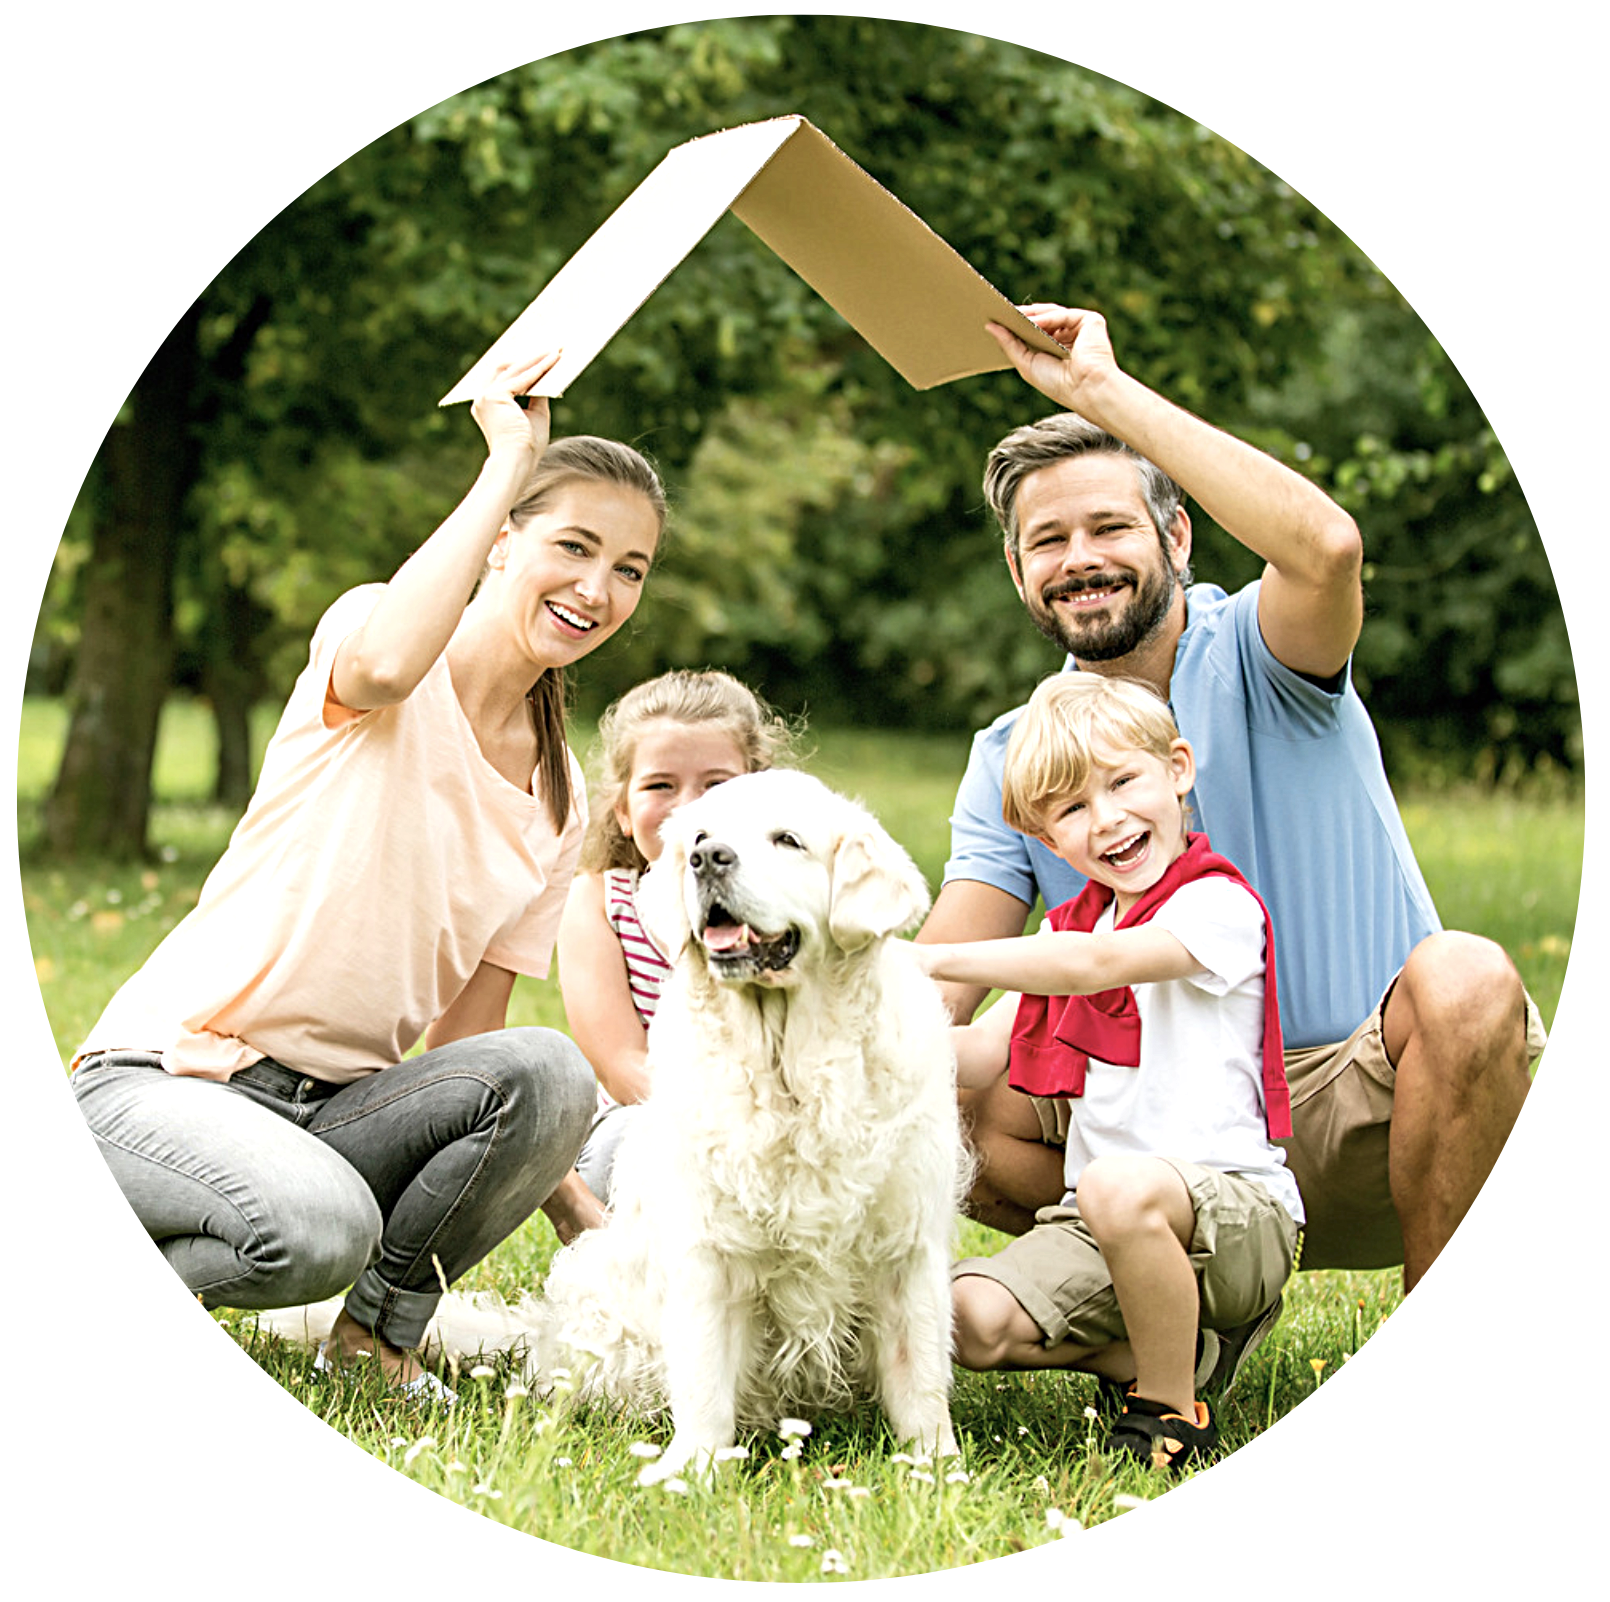 Happy family secured with a good financial plan